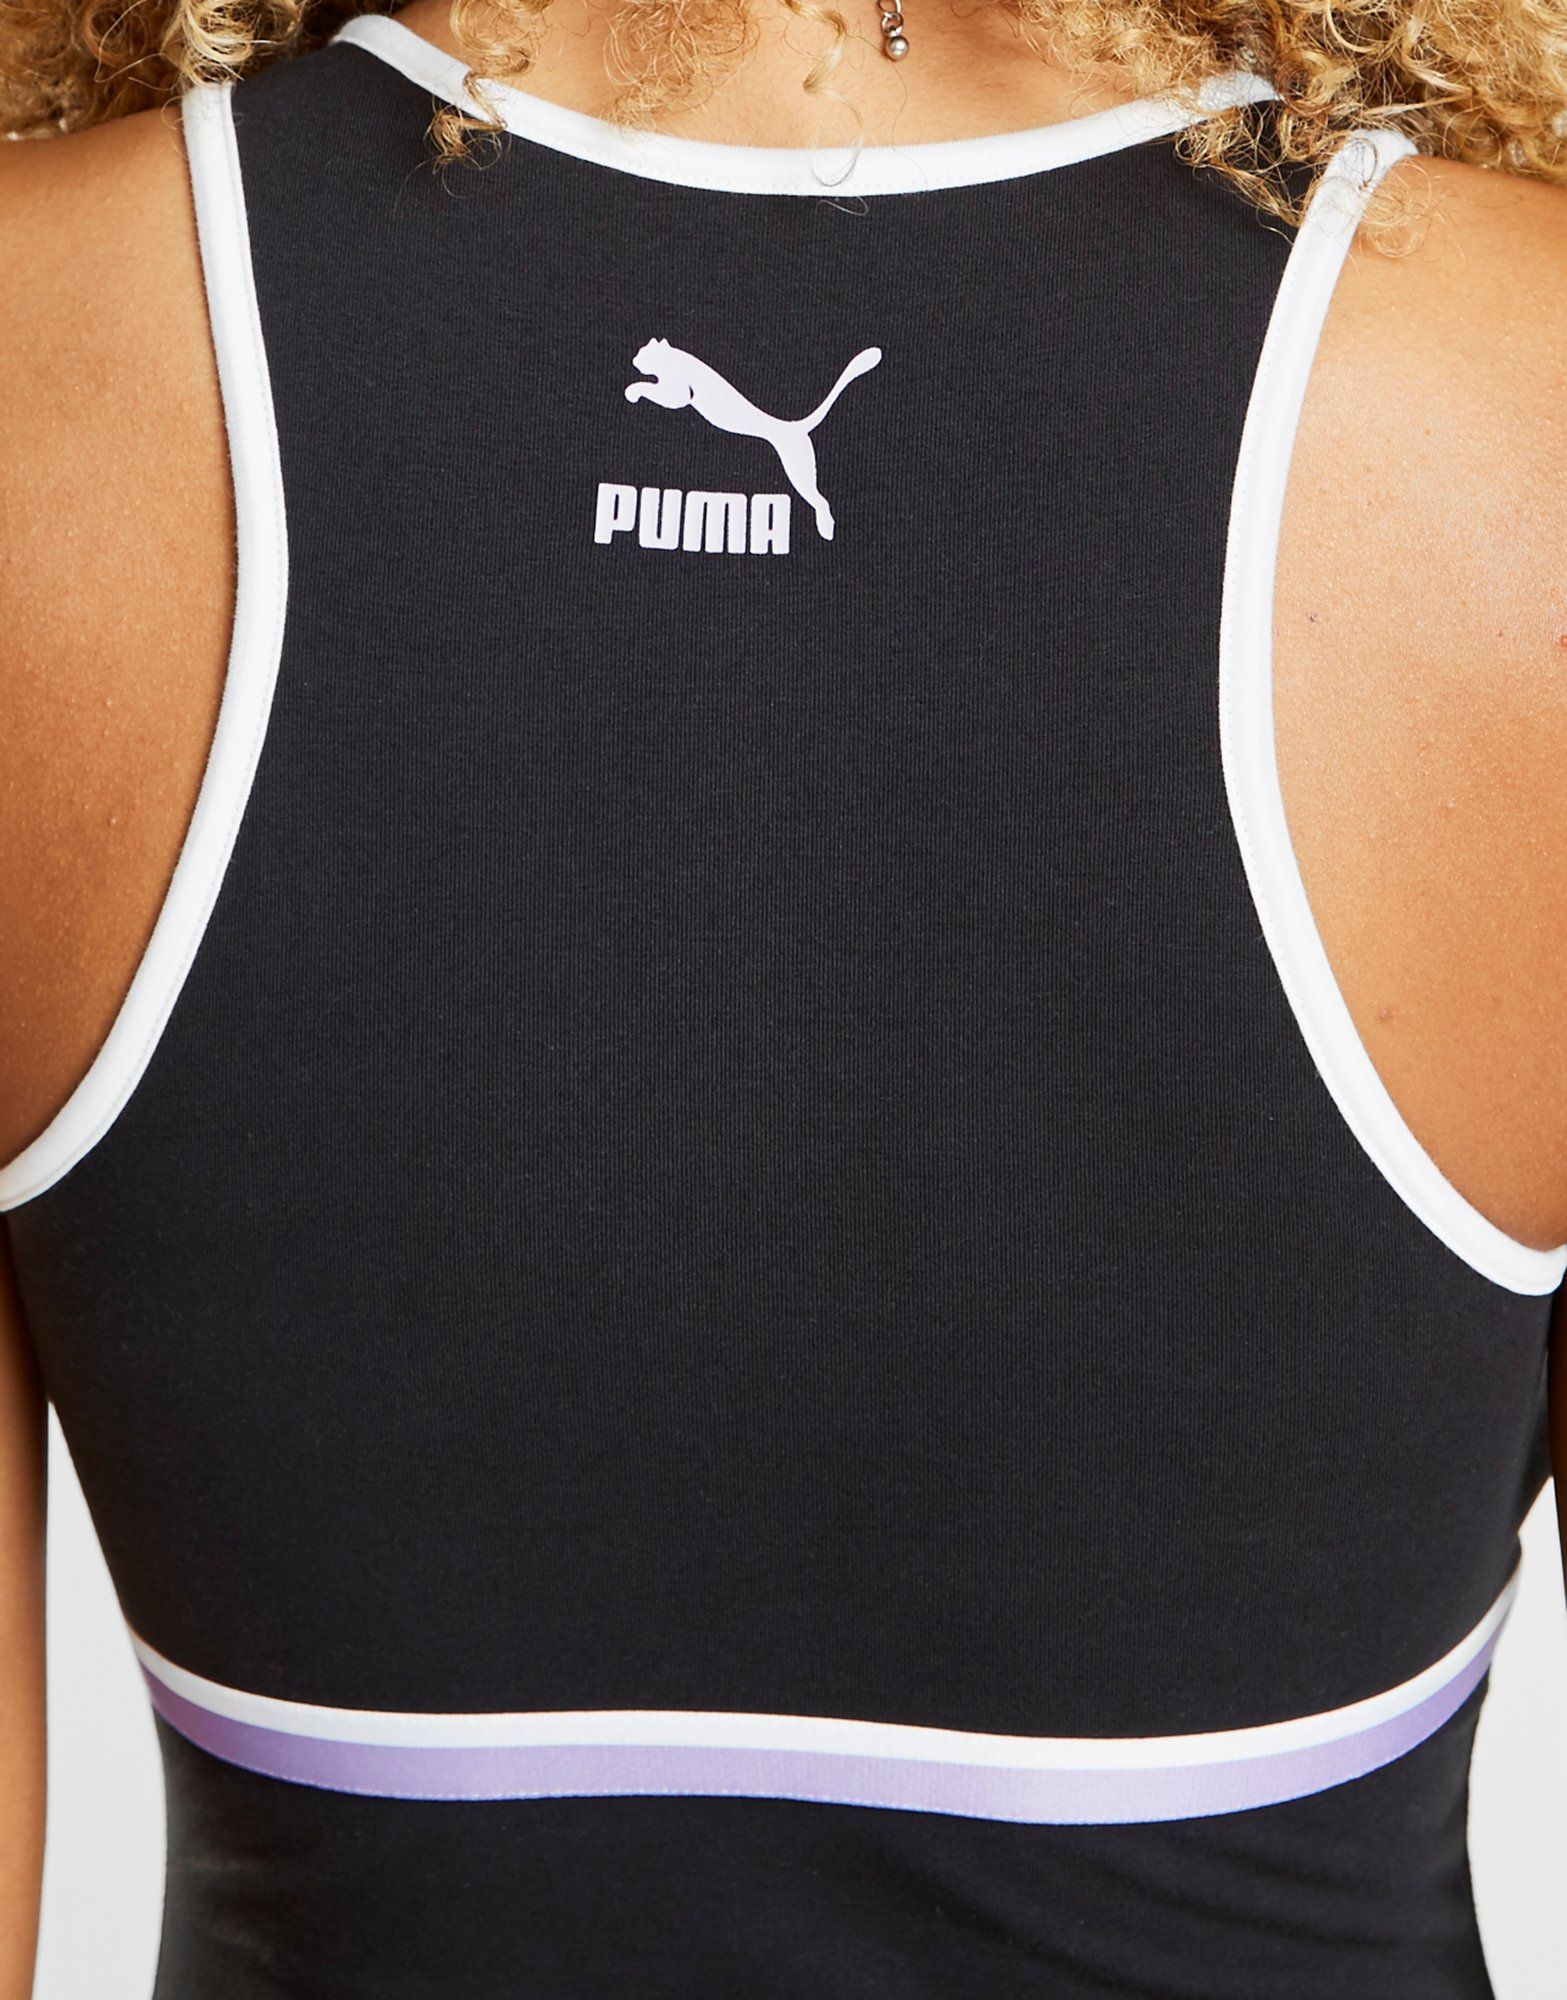 PUMA Stripe High Neck BodySuit